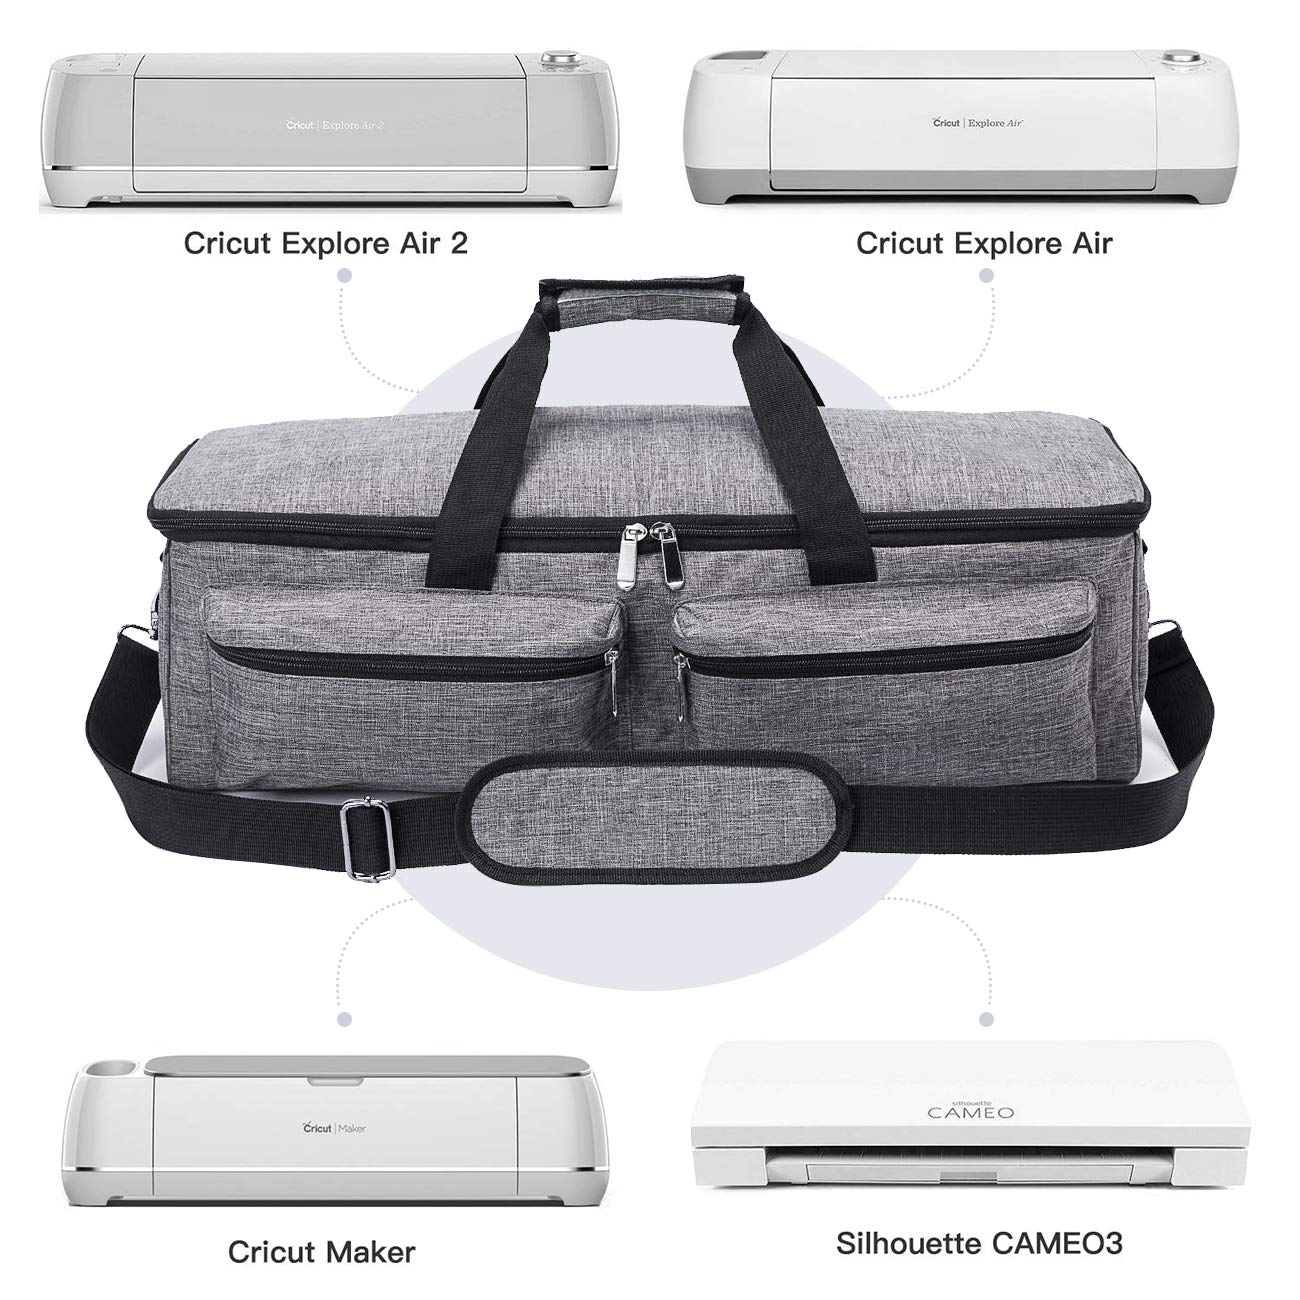 Carrying Bag for Cricut Explore Air (Air 2), Cricut Maker and Silhouette Cameo 3,Heavy Duty Tote Bag Compatible with Cricut Explore Accessories and Supplies